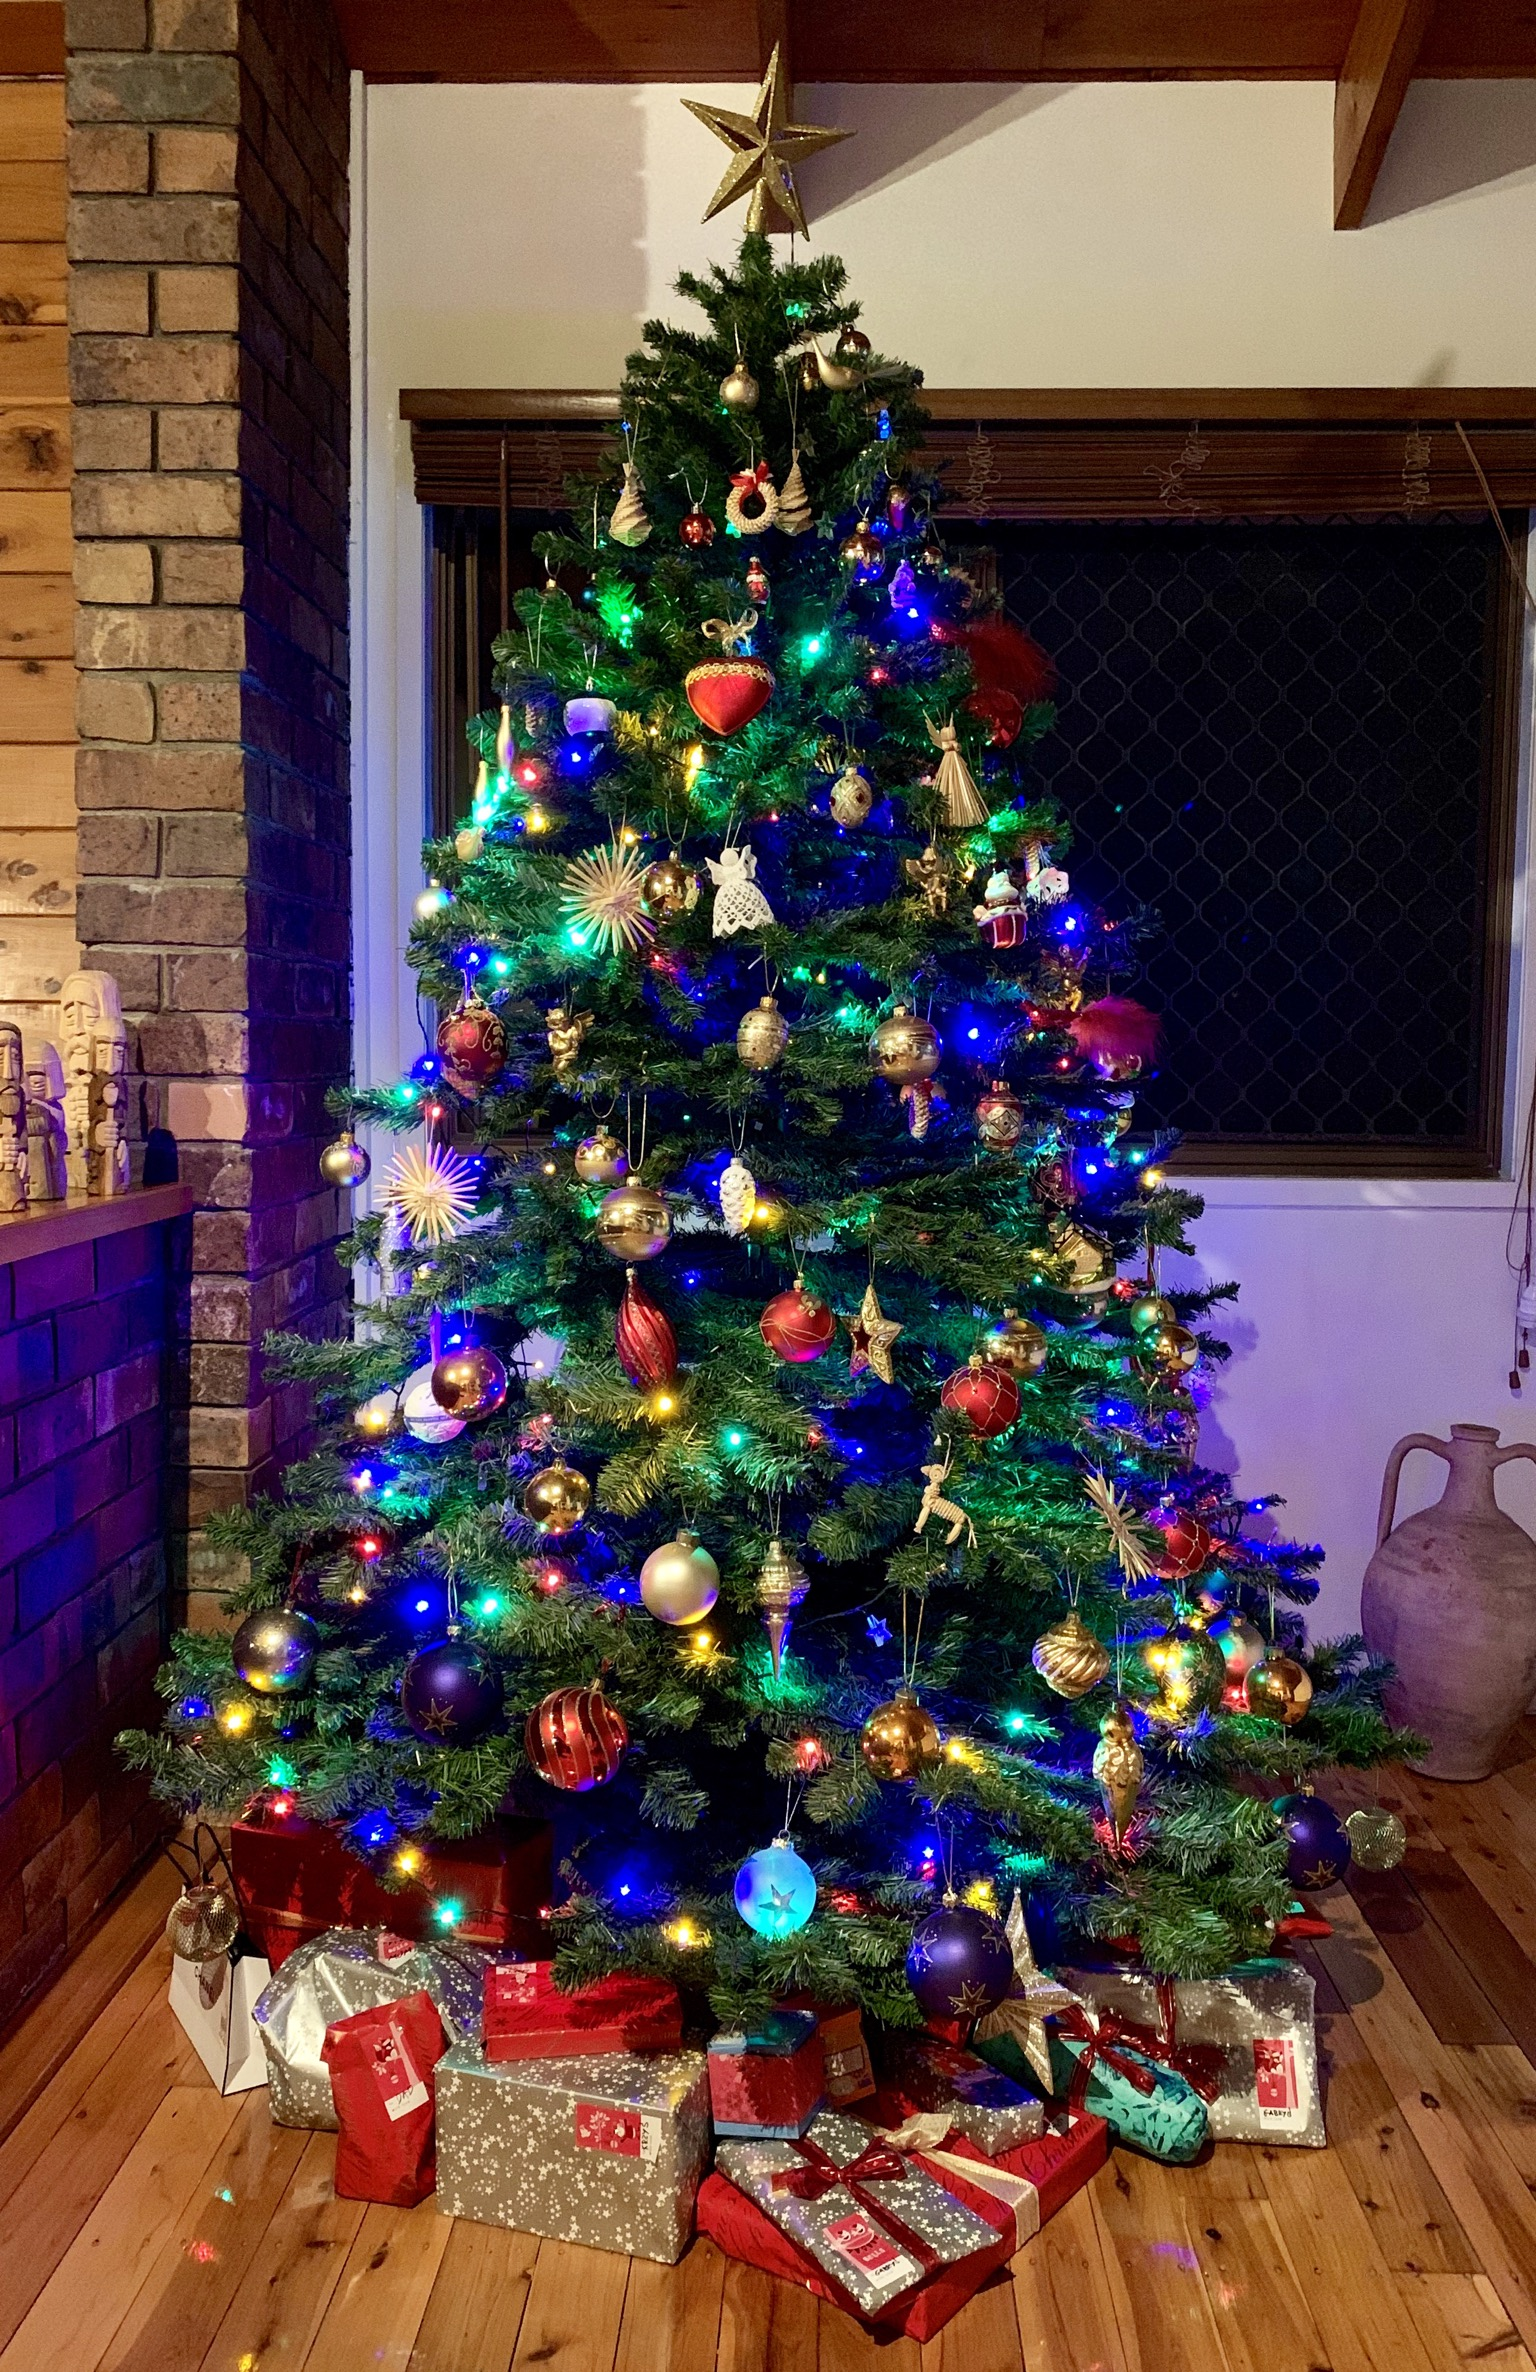 Christmas_tree_with_presents_in_a_privite_house_on_Christmas_Eve_night.jpg?profile=RESIZE_710x